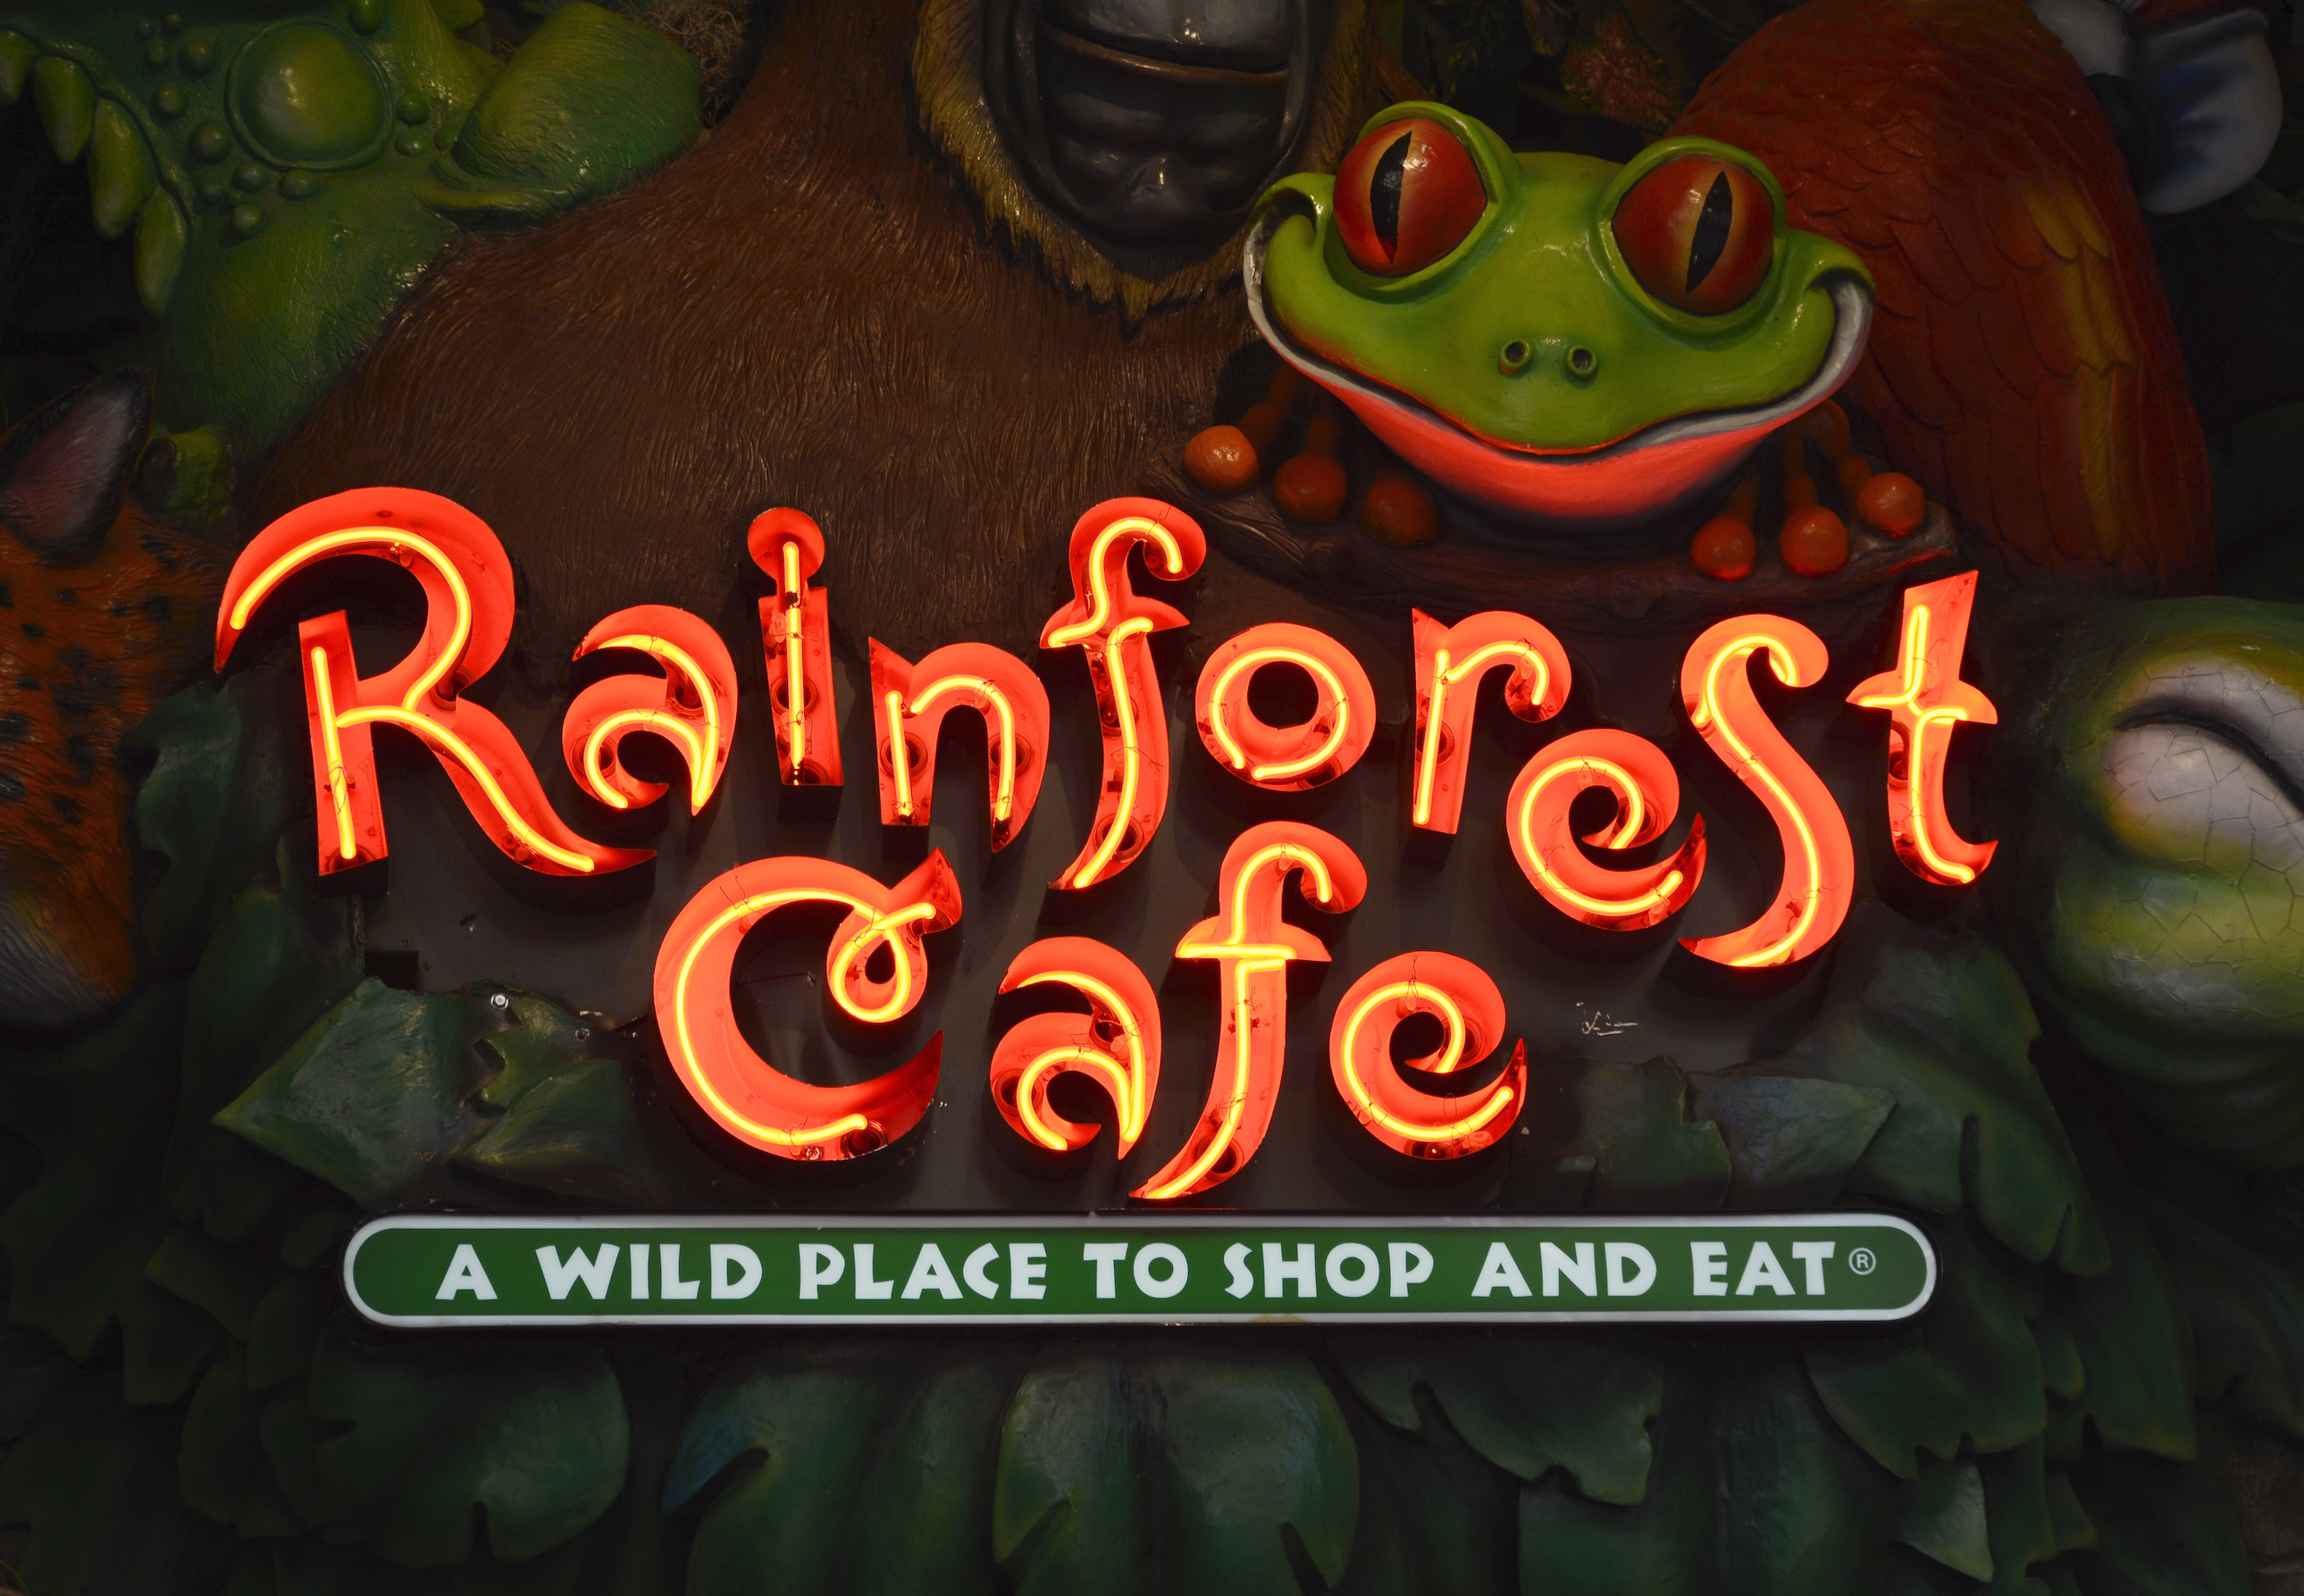 A sign for the Rainforest Cafe